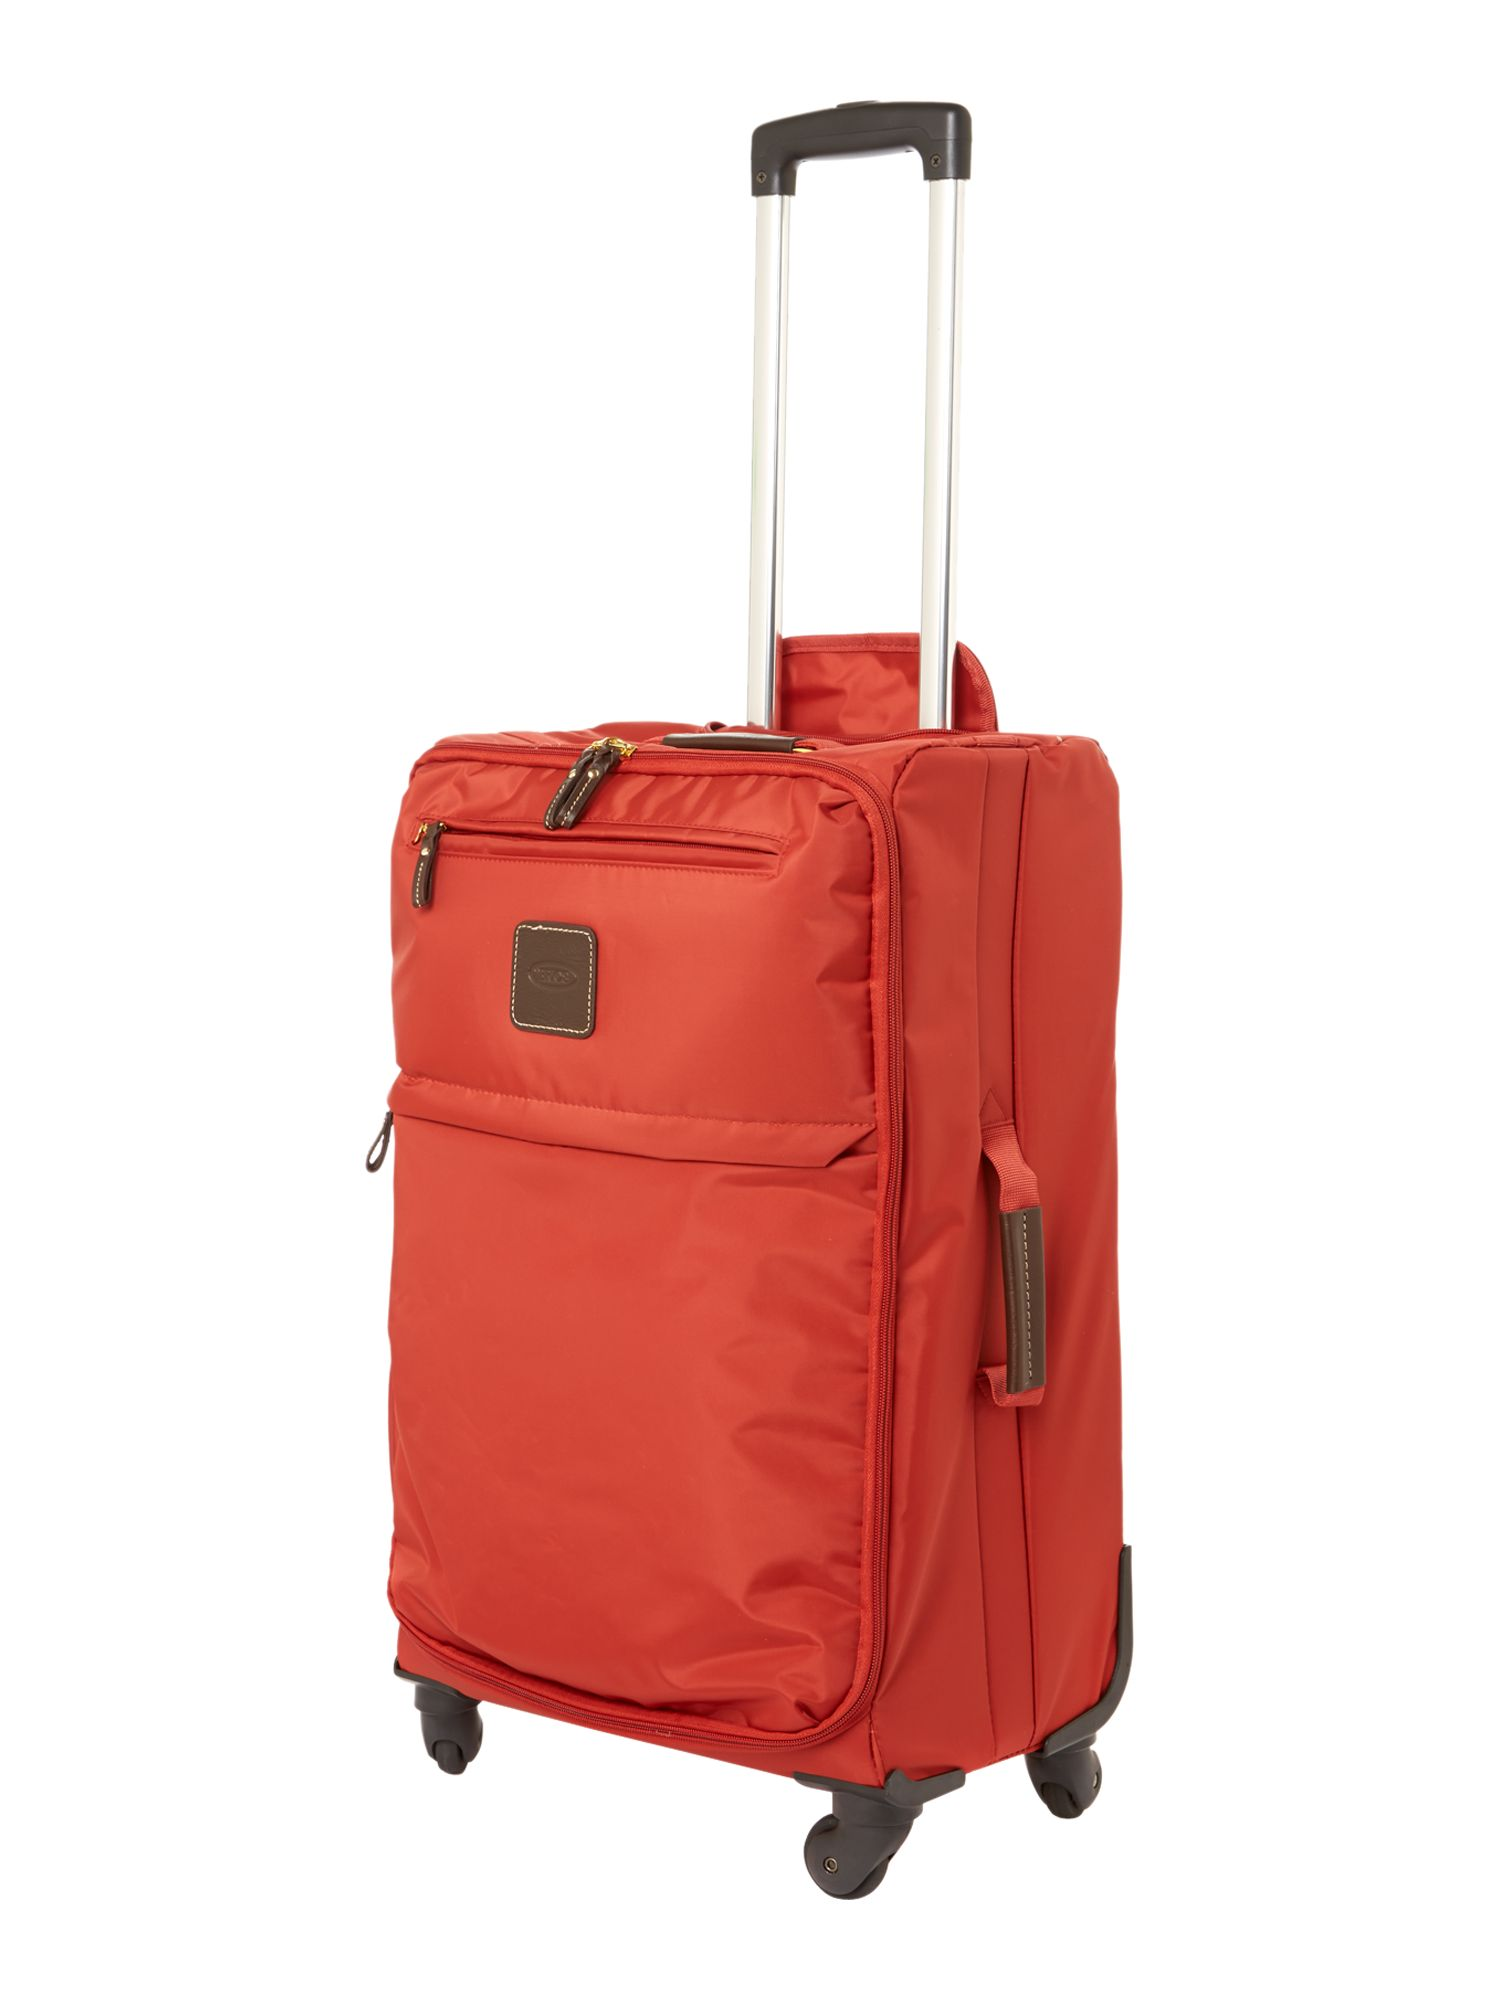 X Travel Canella 65cm 4 wheel case